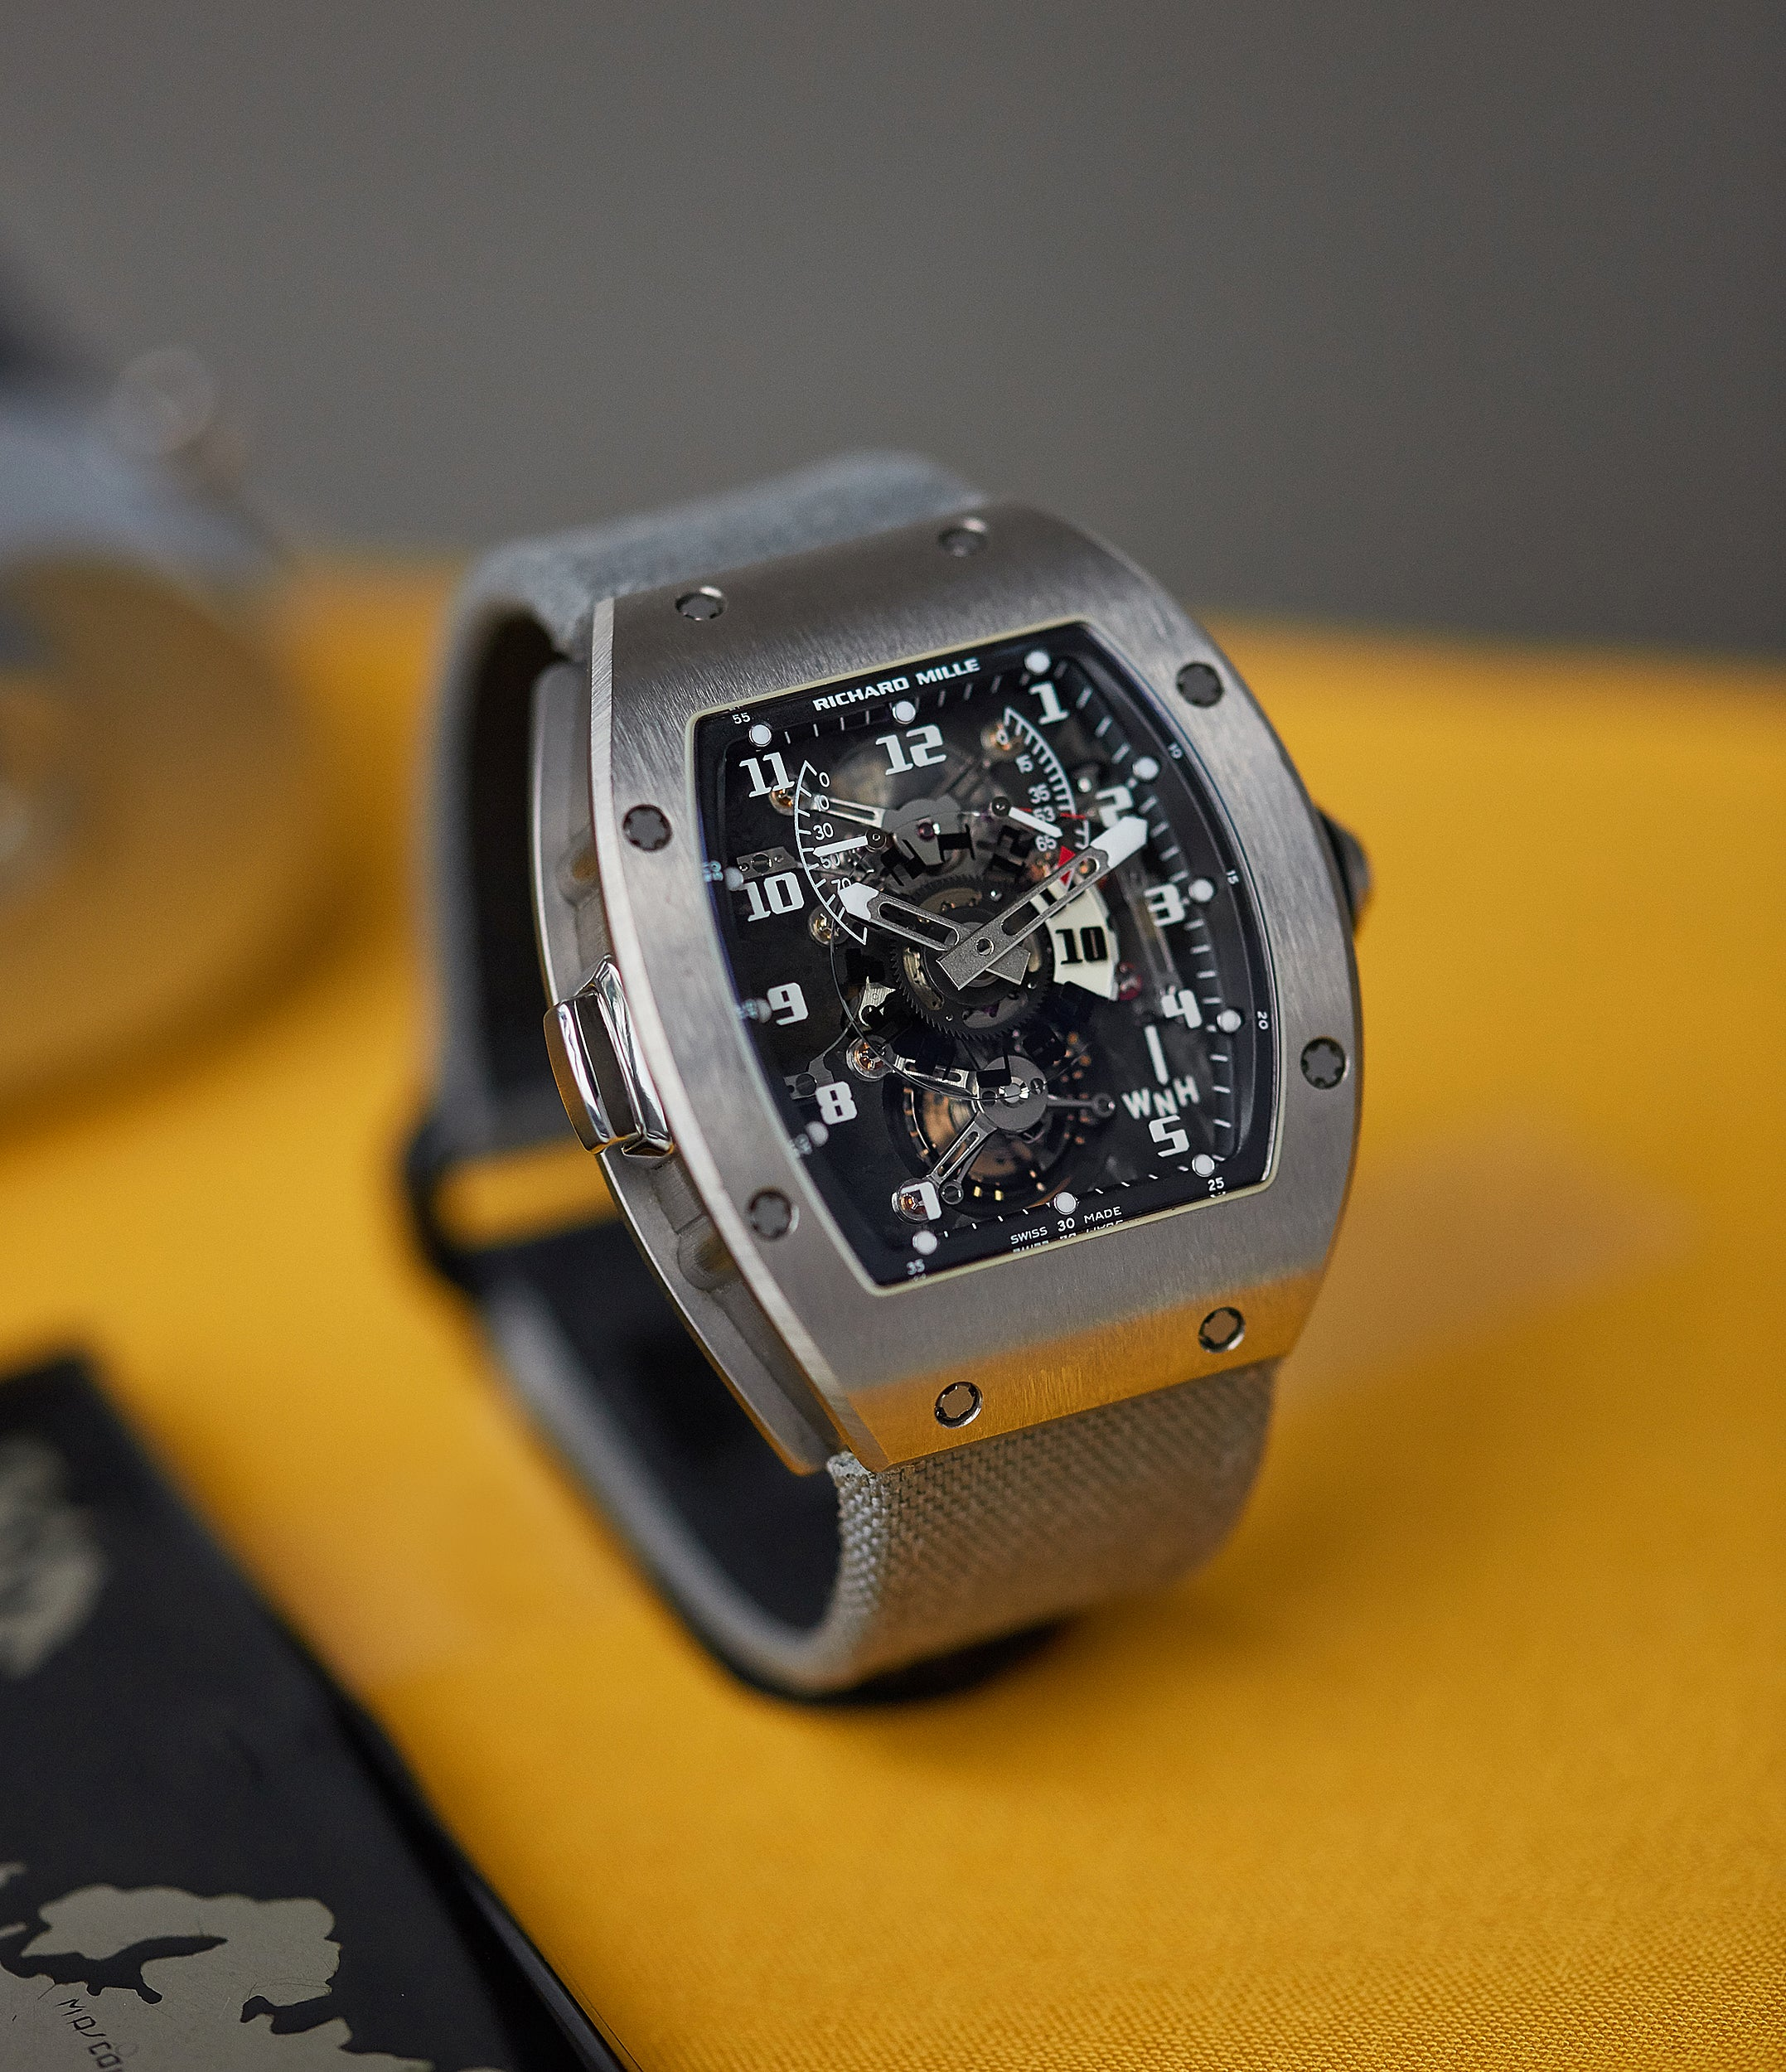 shop London United Kingdom Richard Mille RM003-V2 titanium tourbillon dual-time pre-owned rare independent watchmaker sports traveller watch for sale online at A Collected Man London UK specialist of rare watches